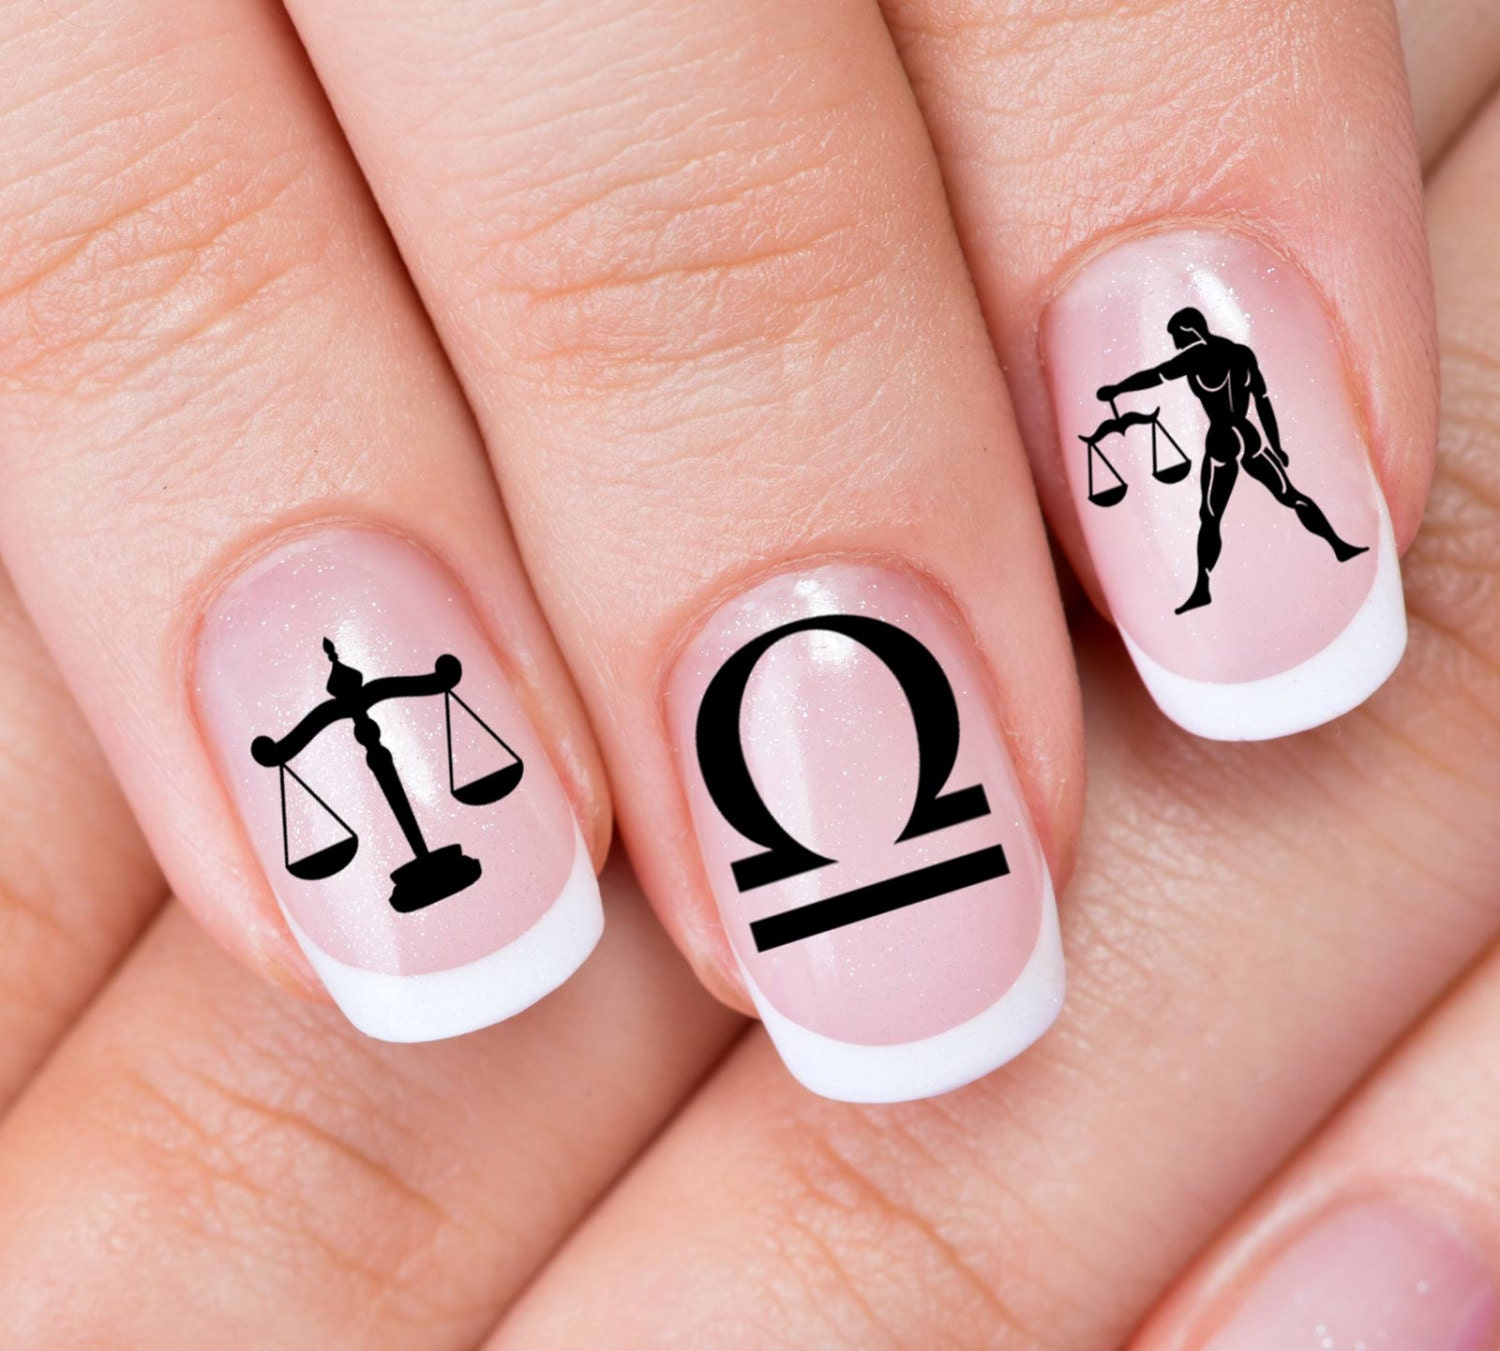 LIBRA Nail Art (ZLB) 30 ZODIAC Astrology Symbols Scales of Justice ...